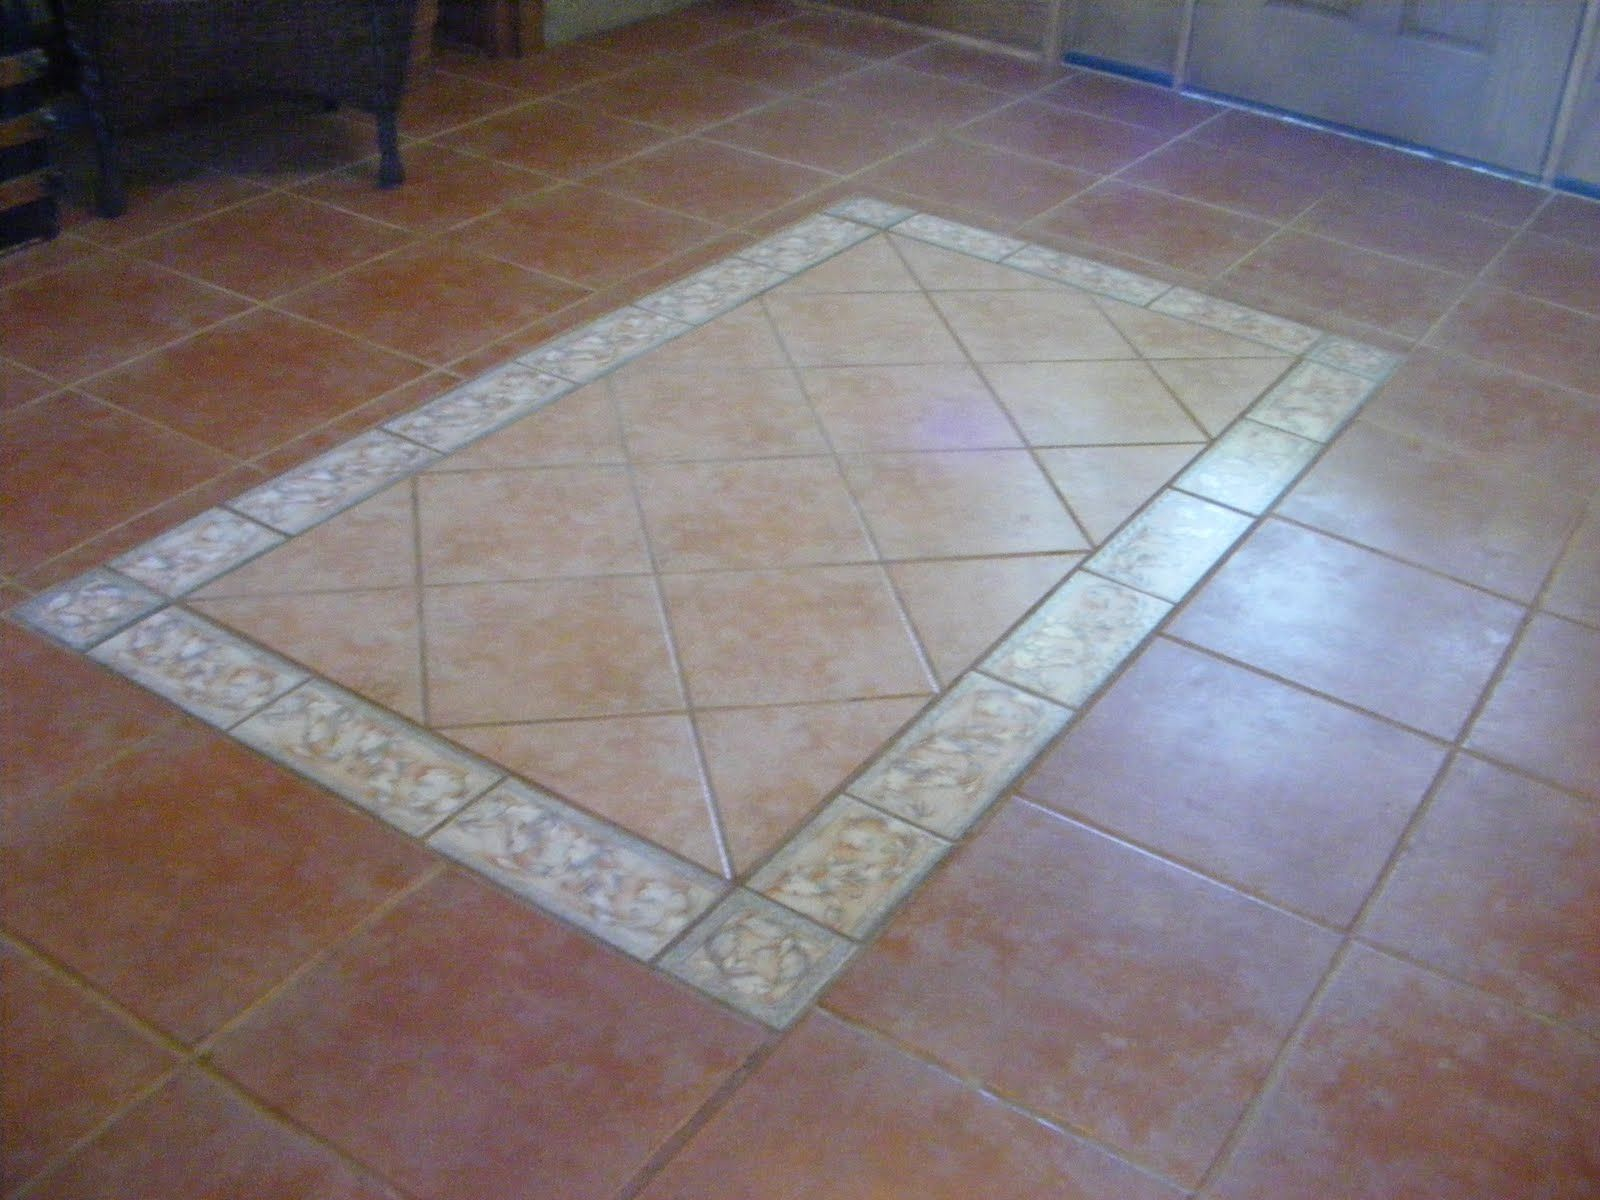 Decoration floor tile design patterns of new inspiration Unique floor tile designs